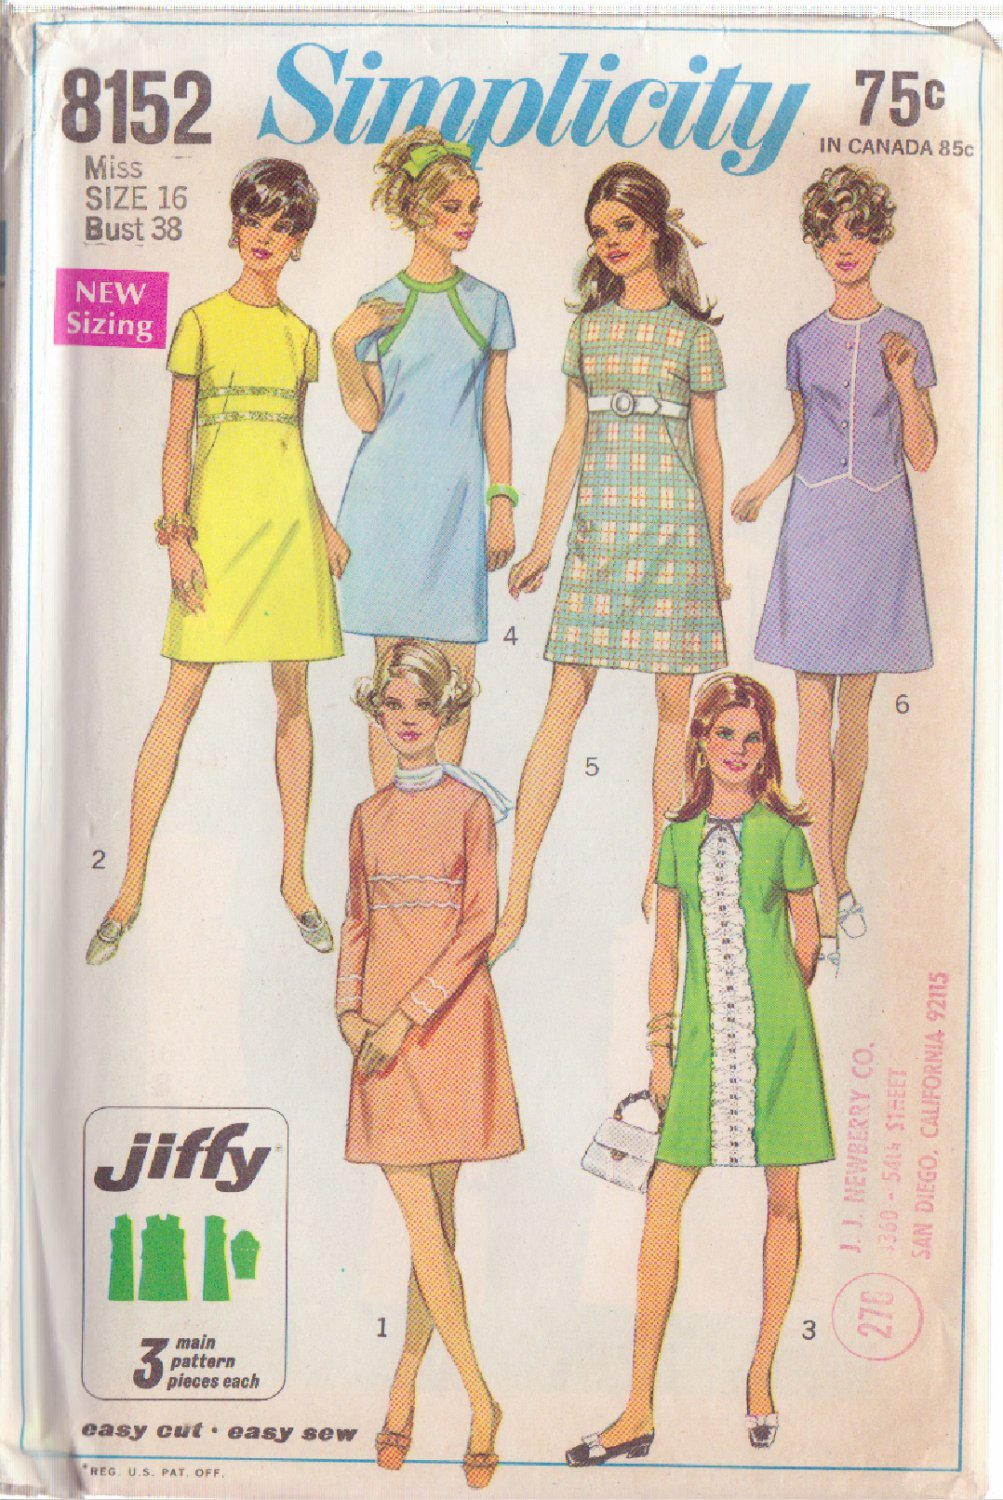 SIMPLICITY PATTERN 8152 MISSES' JIFFY DRESS IN 6 VARIATIONS SIZE 16